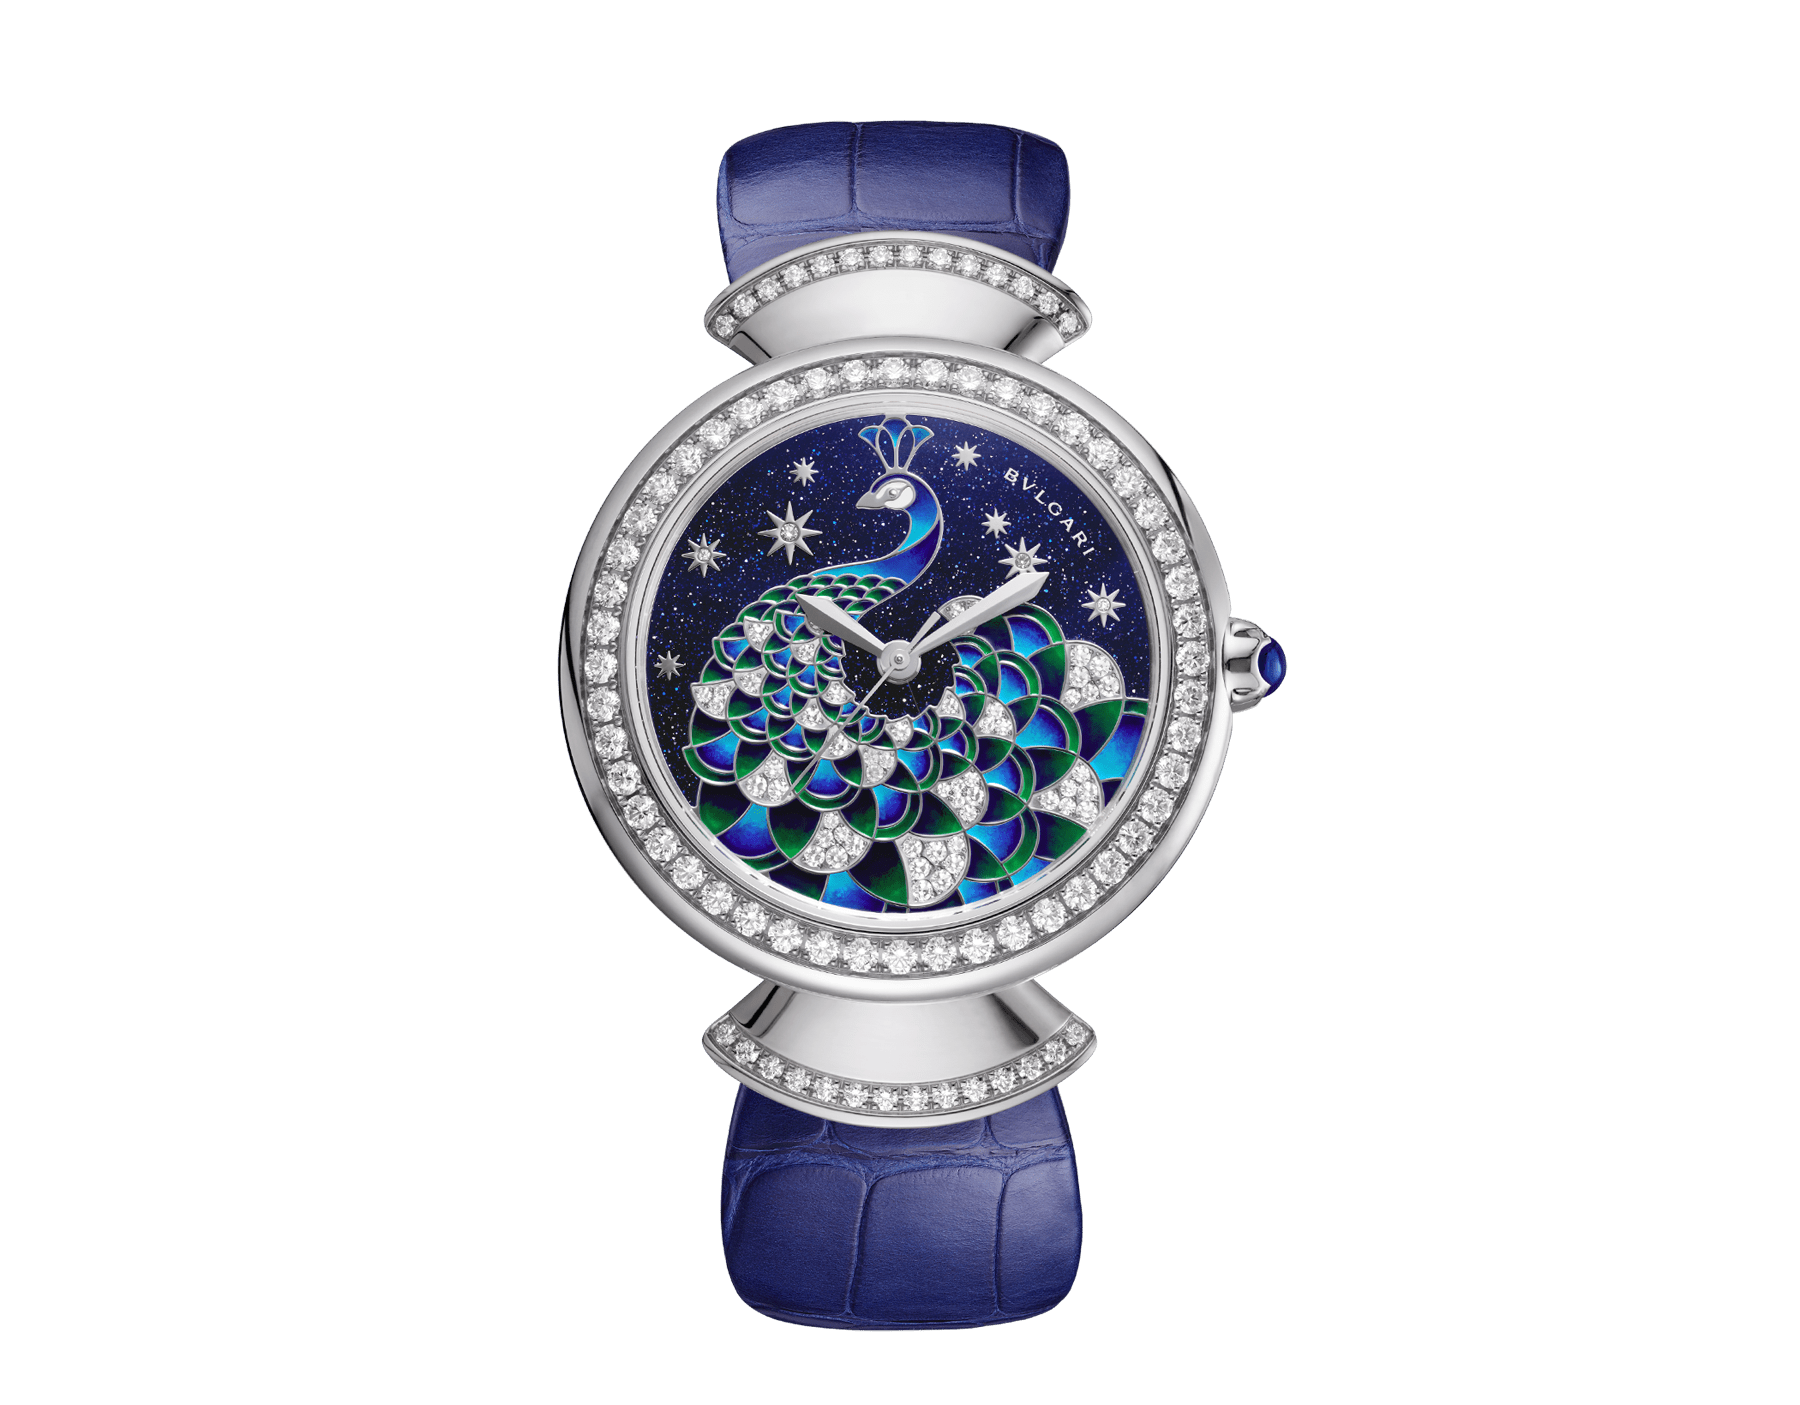 DIVAS' DREAM watch with 18 kt white gold case set with brilliant-cut diamonds, aventurine dial with hand-painted peacock set with diamonds and dark blue alligator bracelet 102740 image 1